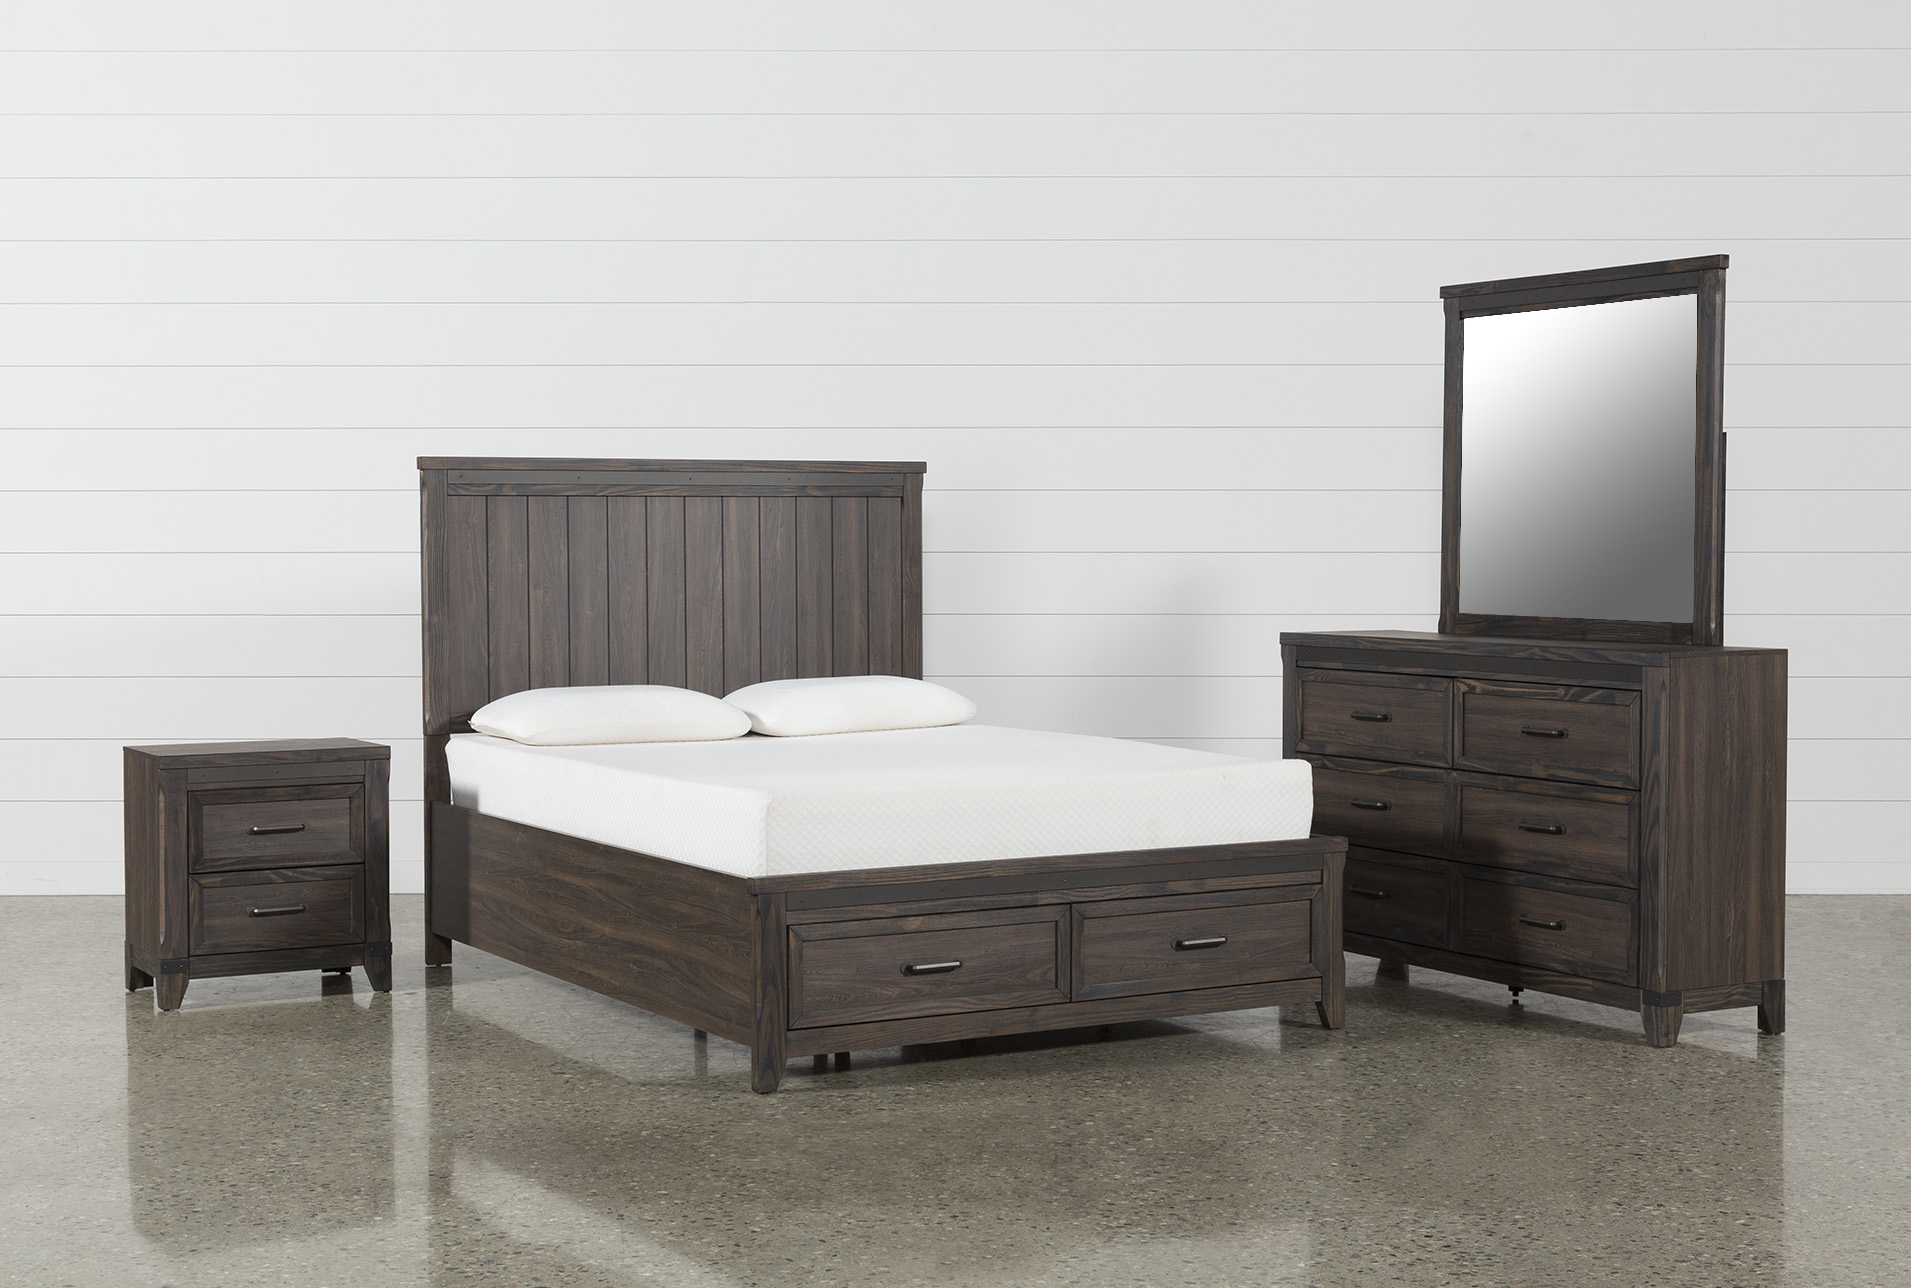 queen bedroom set Hendricks 4 Piece Queen Bedroom Set (Qty: 1) has been successfully added to  your Cart.